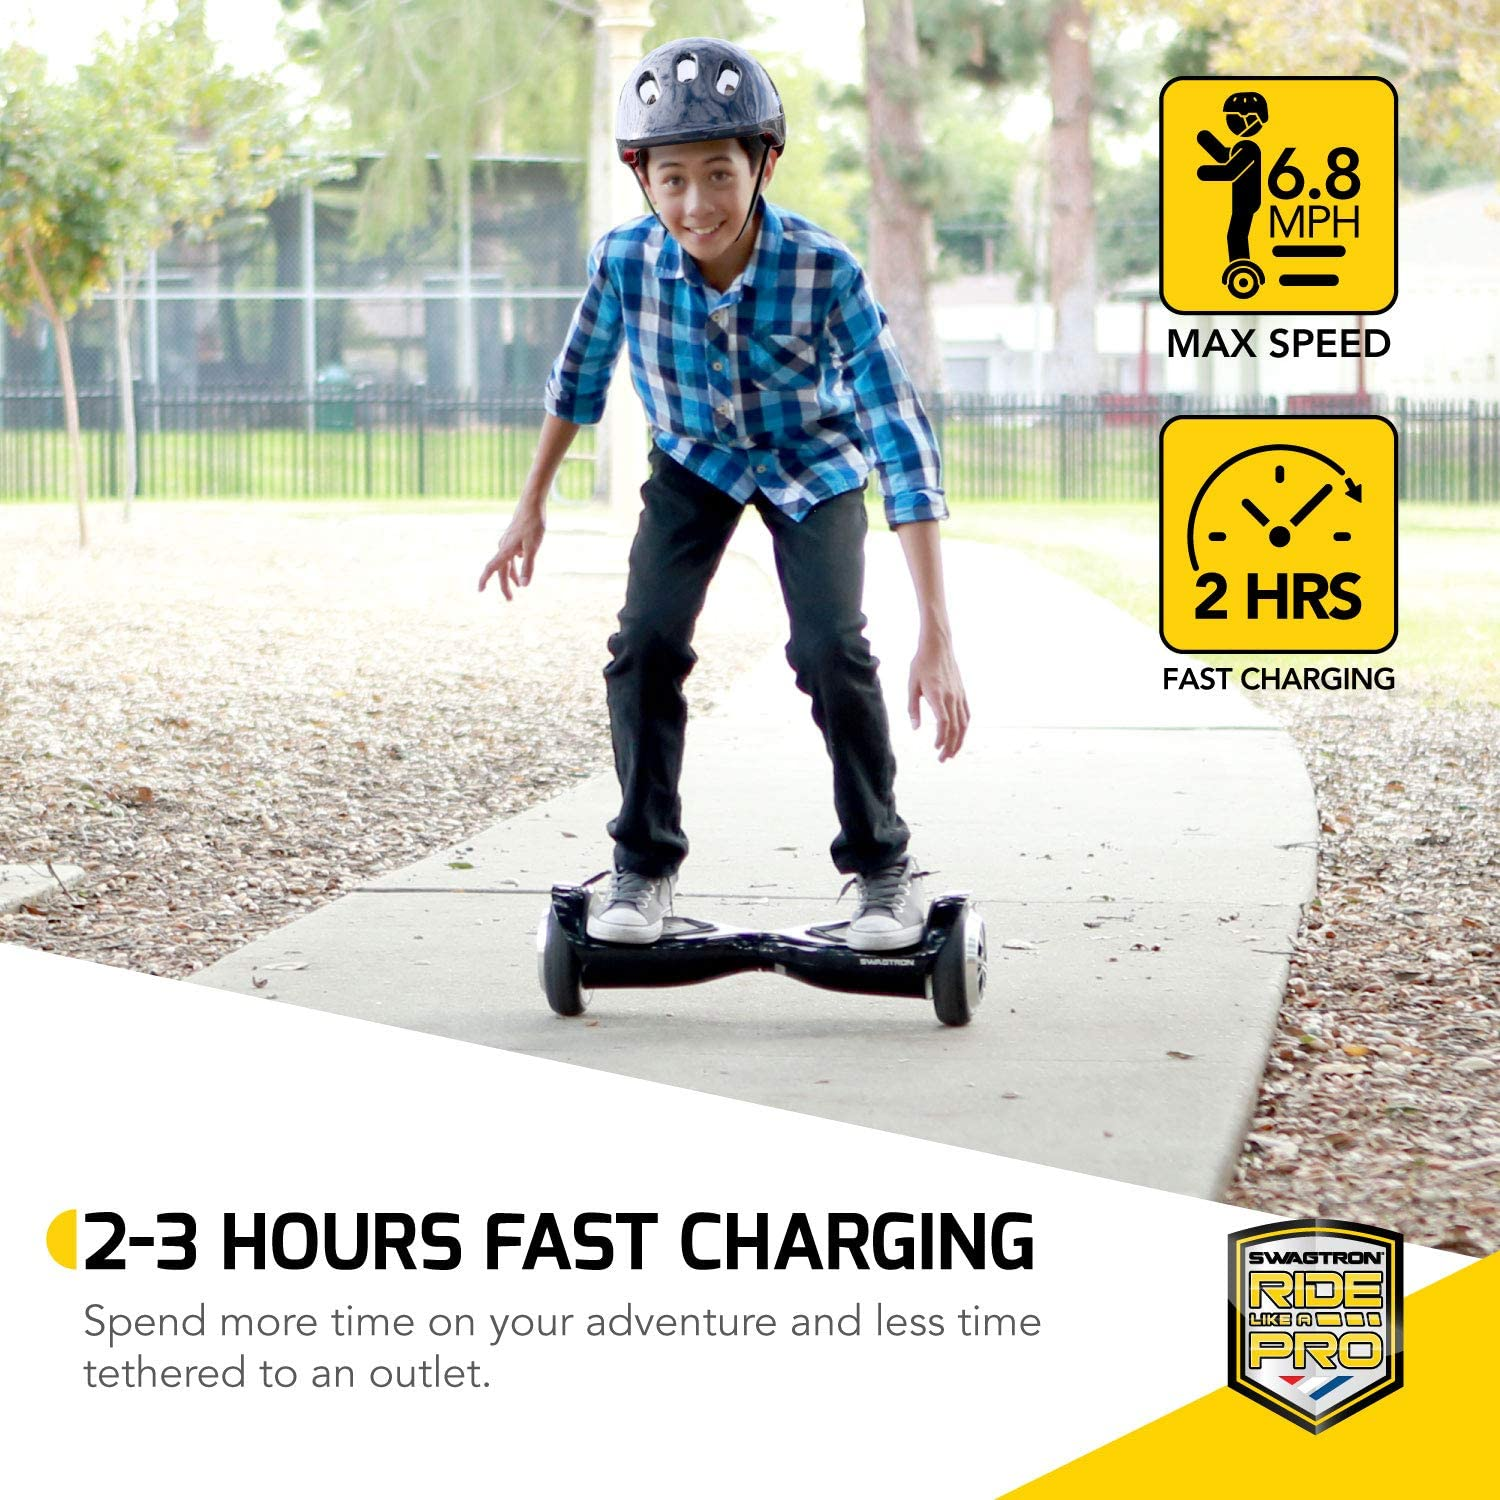 Swagtron Swagboard Hoverboard for Kids and Young Adults - 2